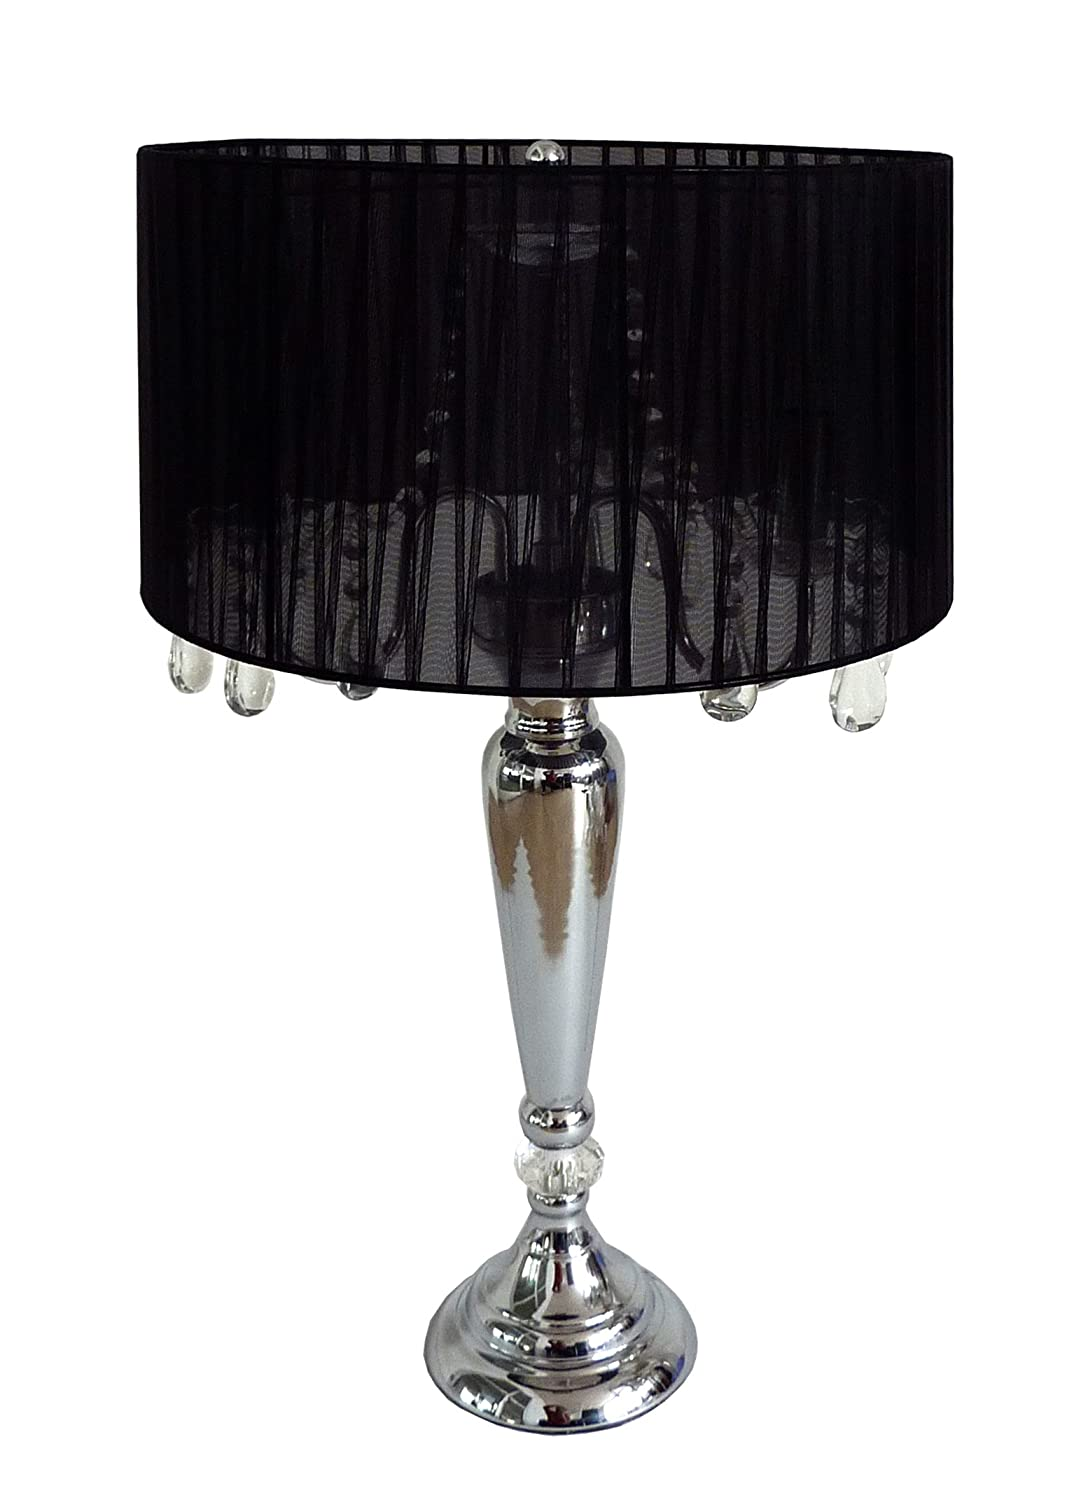 Elegant Designs LT1034 BLK Trendy Sheer Table Lamp With Hanging Crystals  And Sheer Shade, Black     Amazon.com